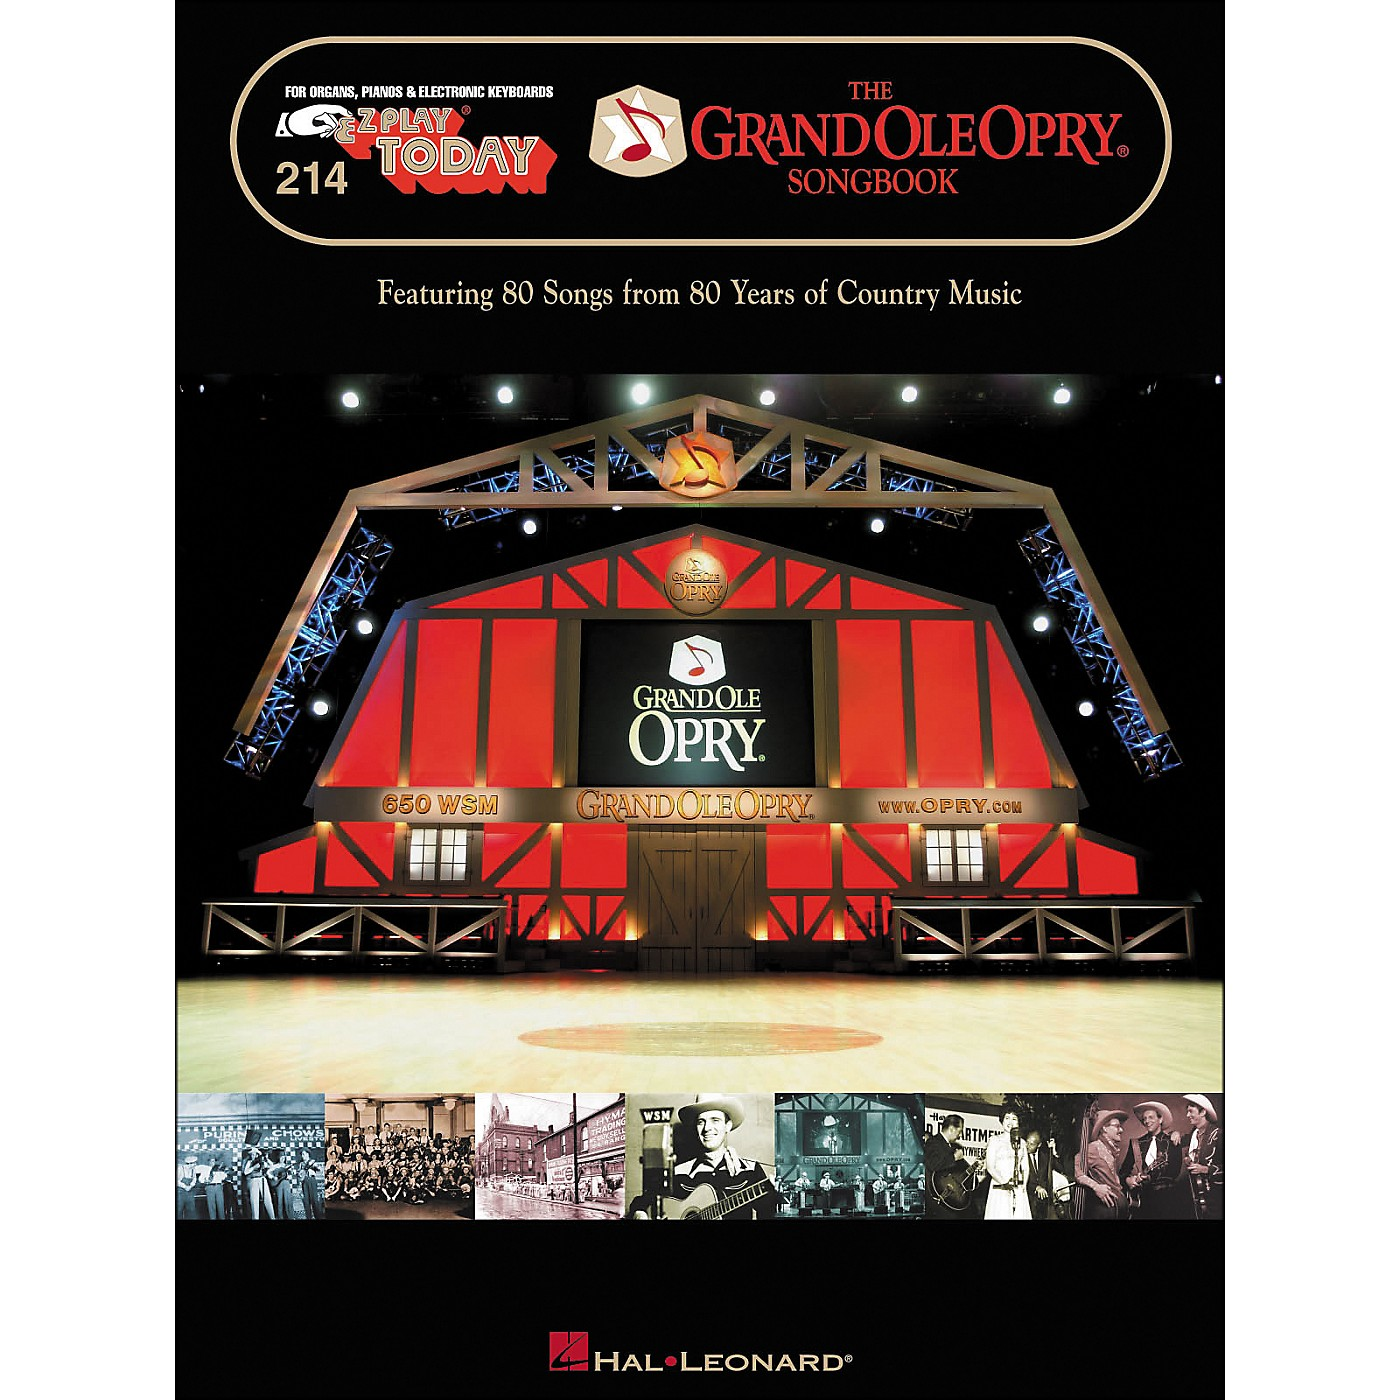 Hal Leonard The Grand Ole Opry Songbook E-Z Play 214 thumbnail